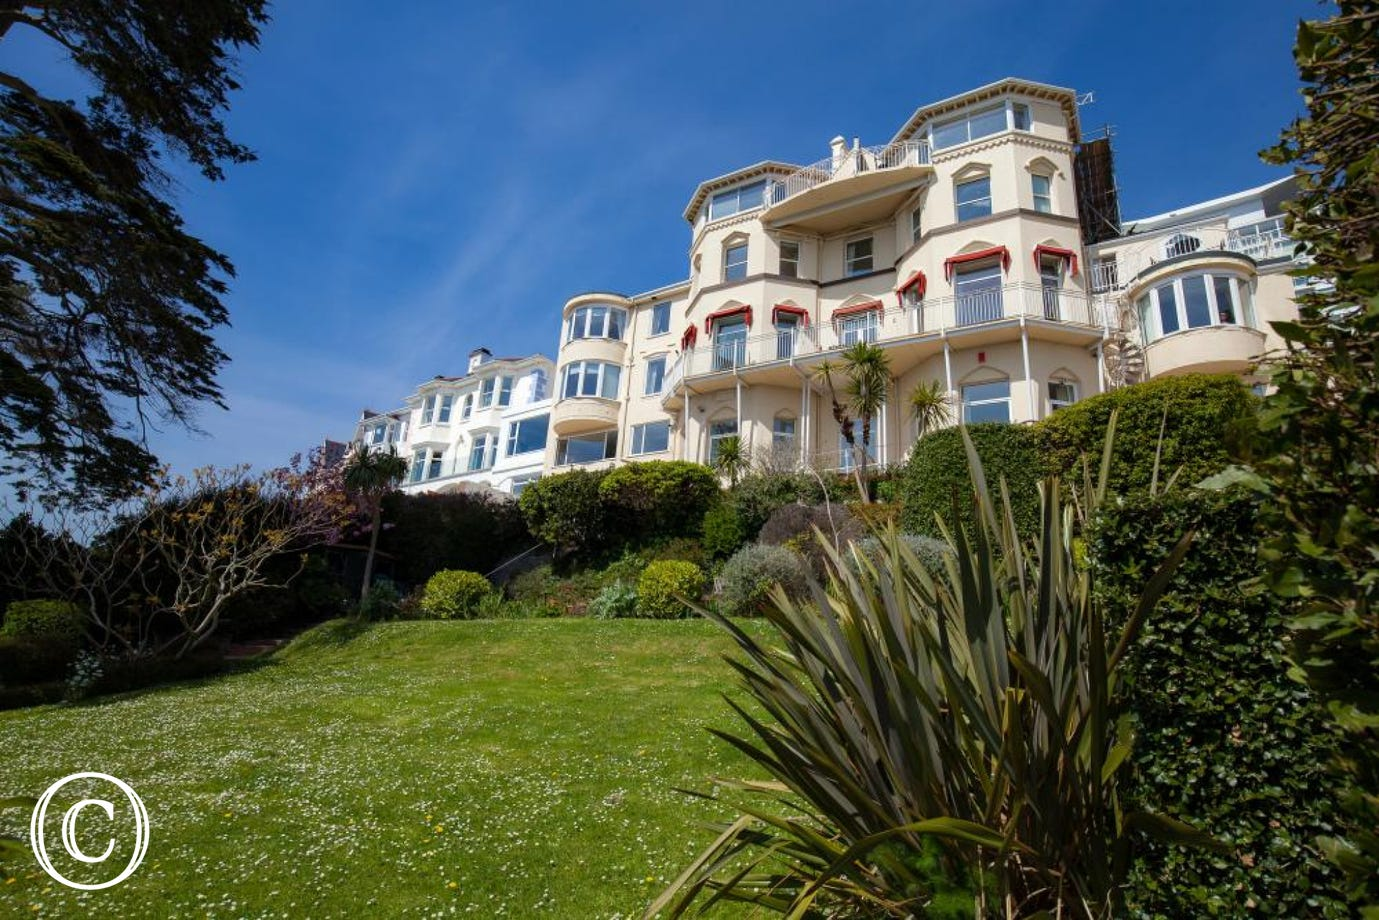 Bayfort Mansions in Torquay, South Devon, home to fabulous self-catering holiday apartments for couples and families alike